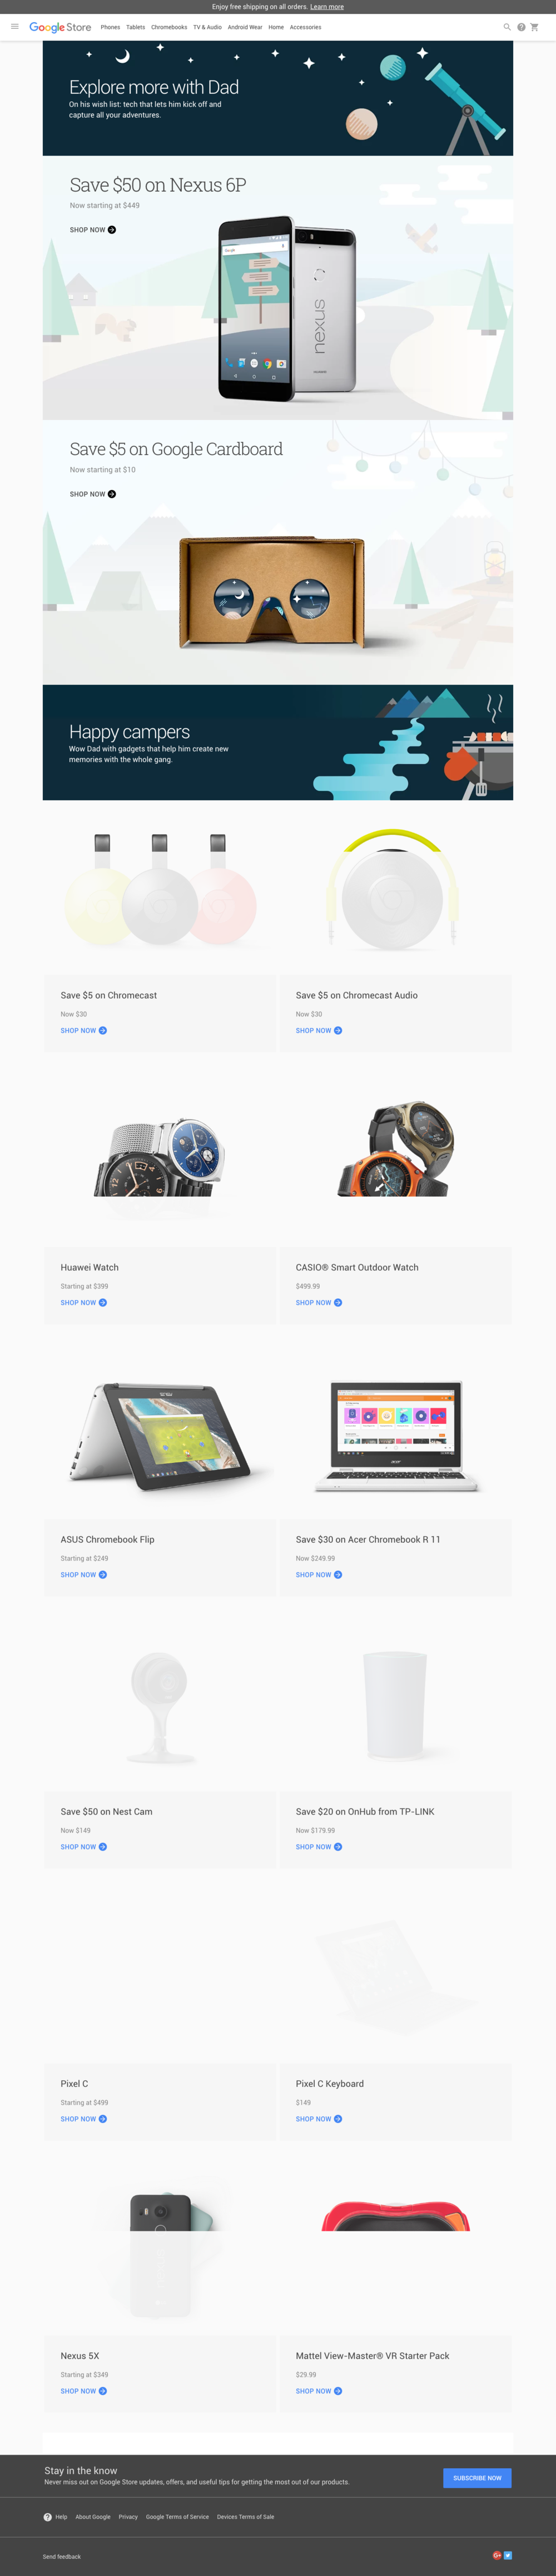 Google Store - Father's Day Promo page